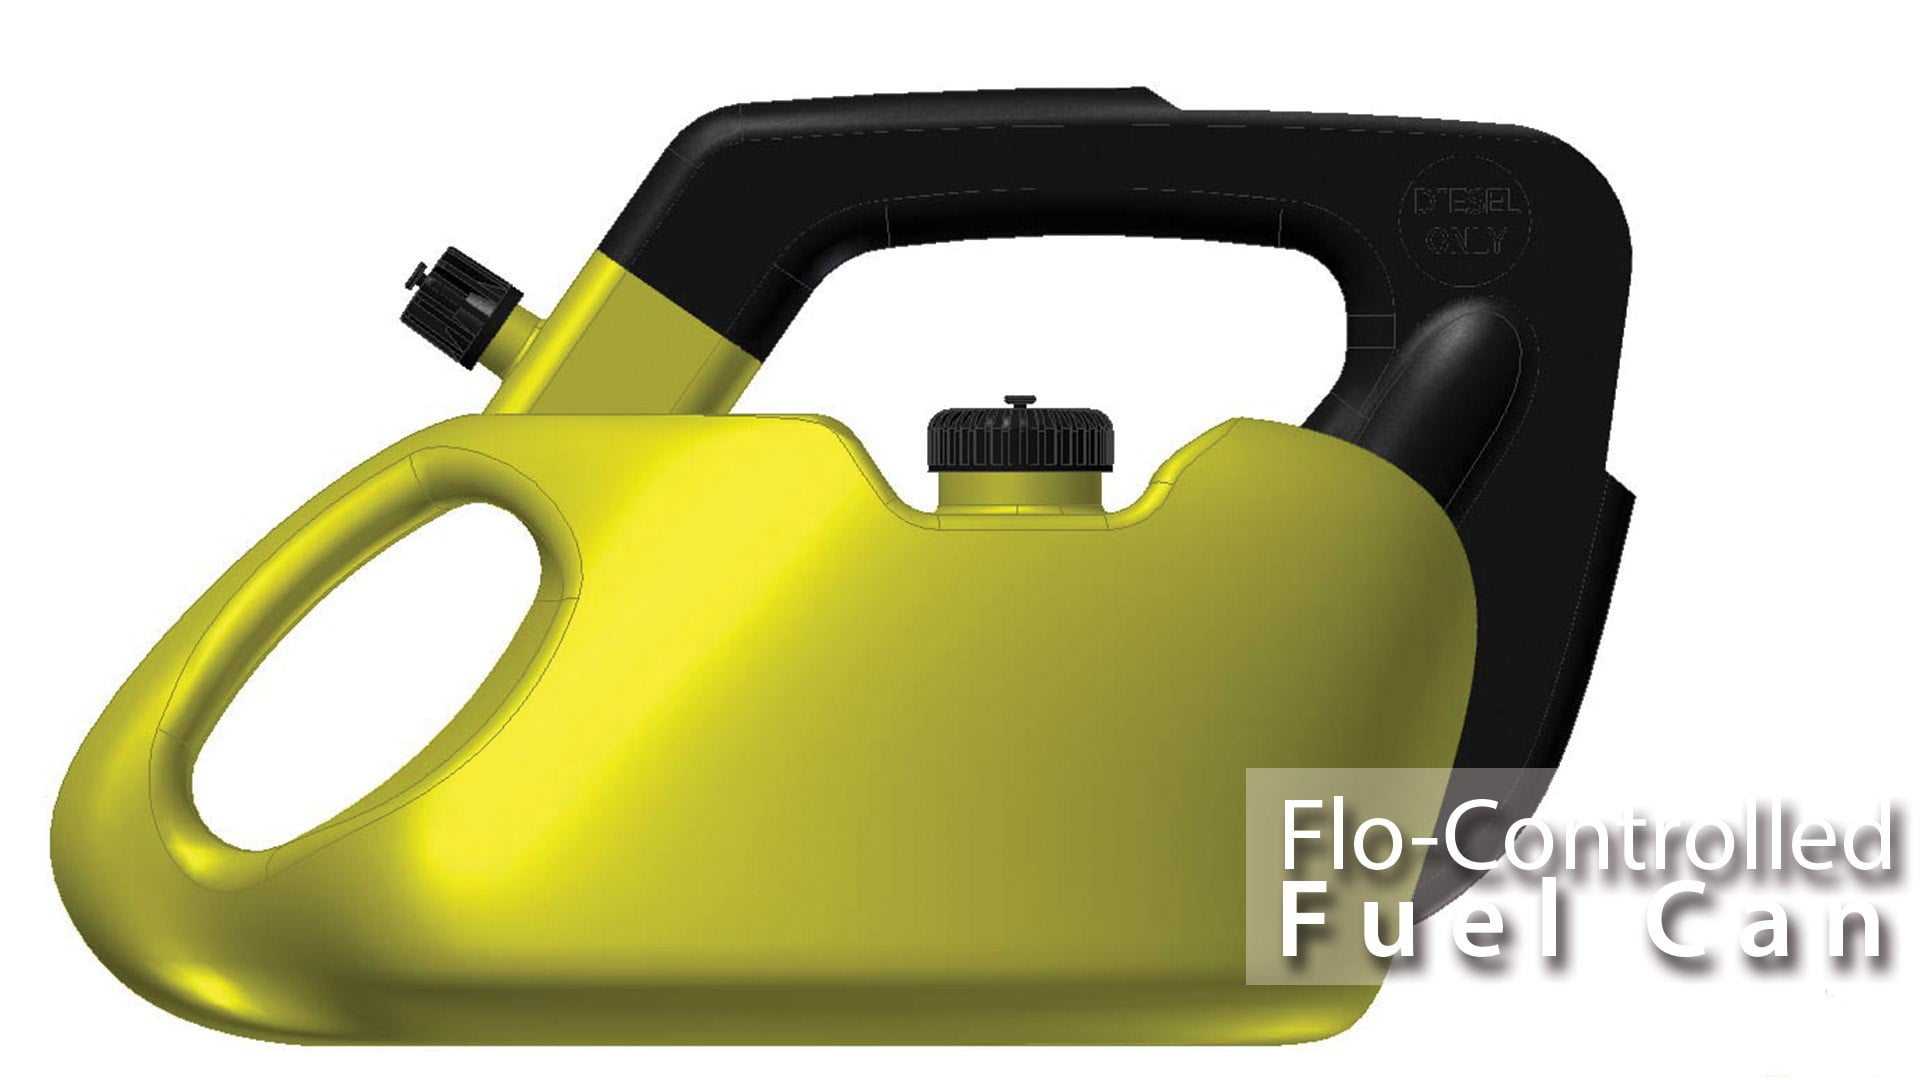 push-button-fuel-can-3d-drawing-10ltr